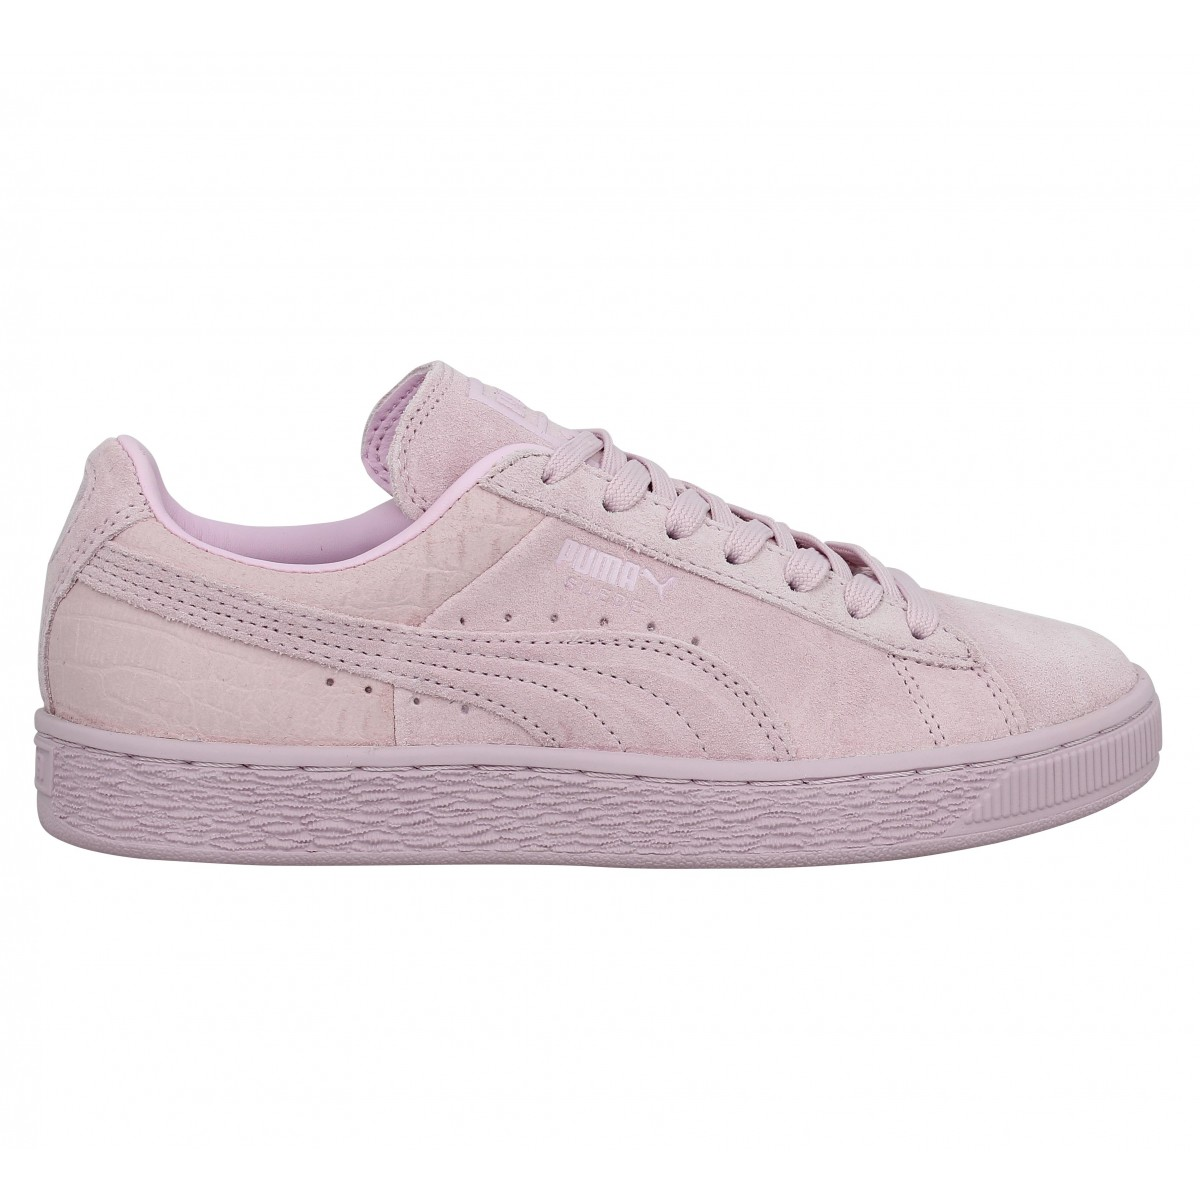 Chaussures Puma El Ace blanches Casual homme 9FZt08EdB9